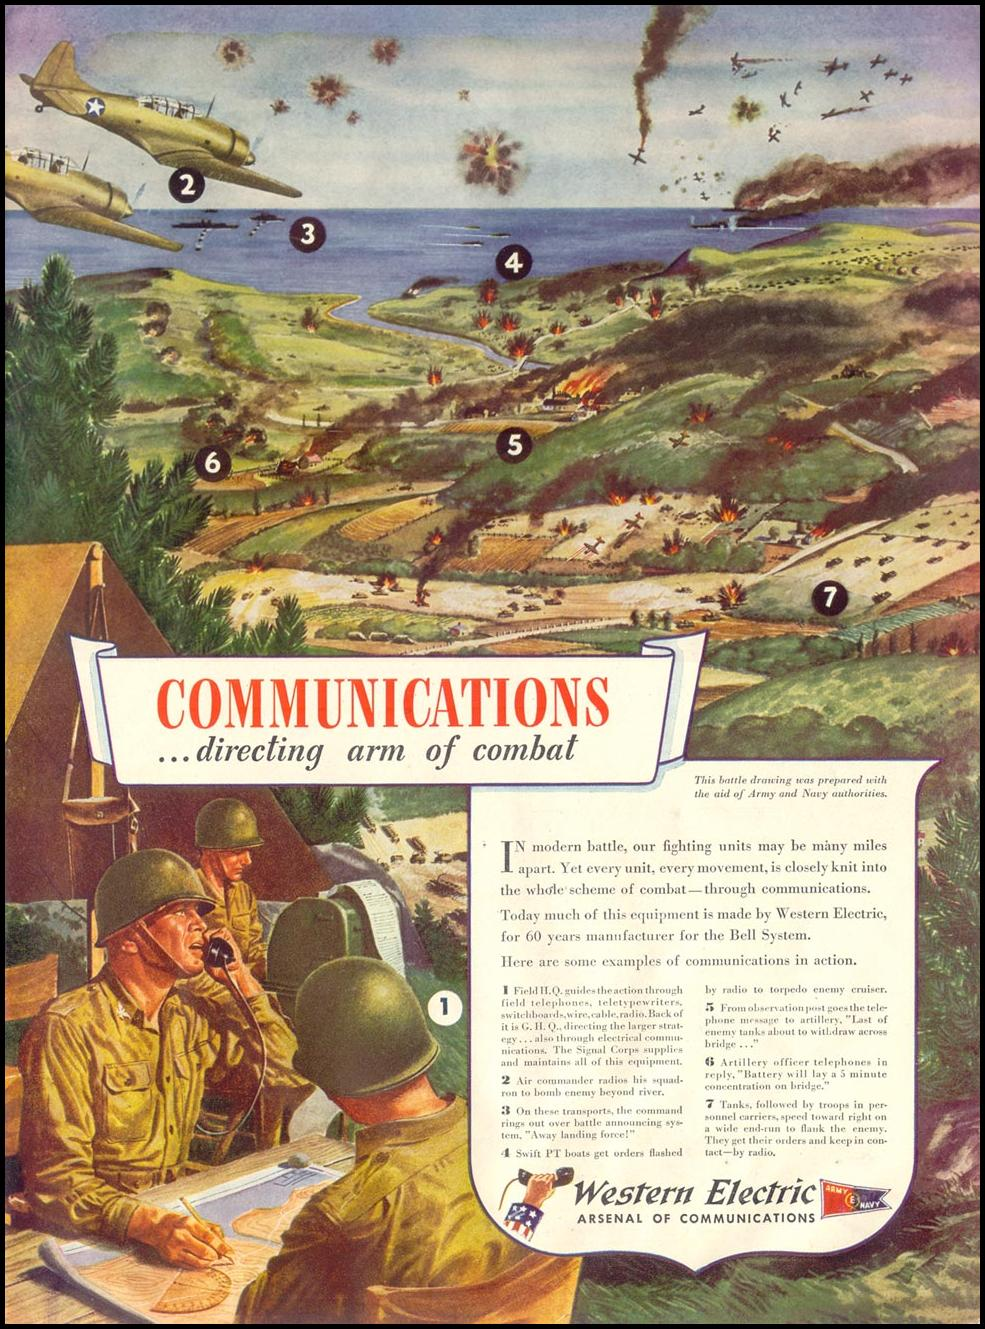 WESTERN ELECTRIC WARTIME PRODUCTION LIFE 11/30/1942